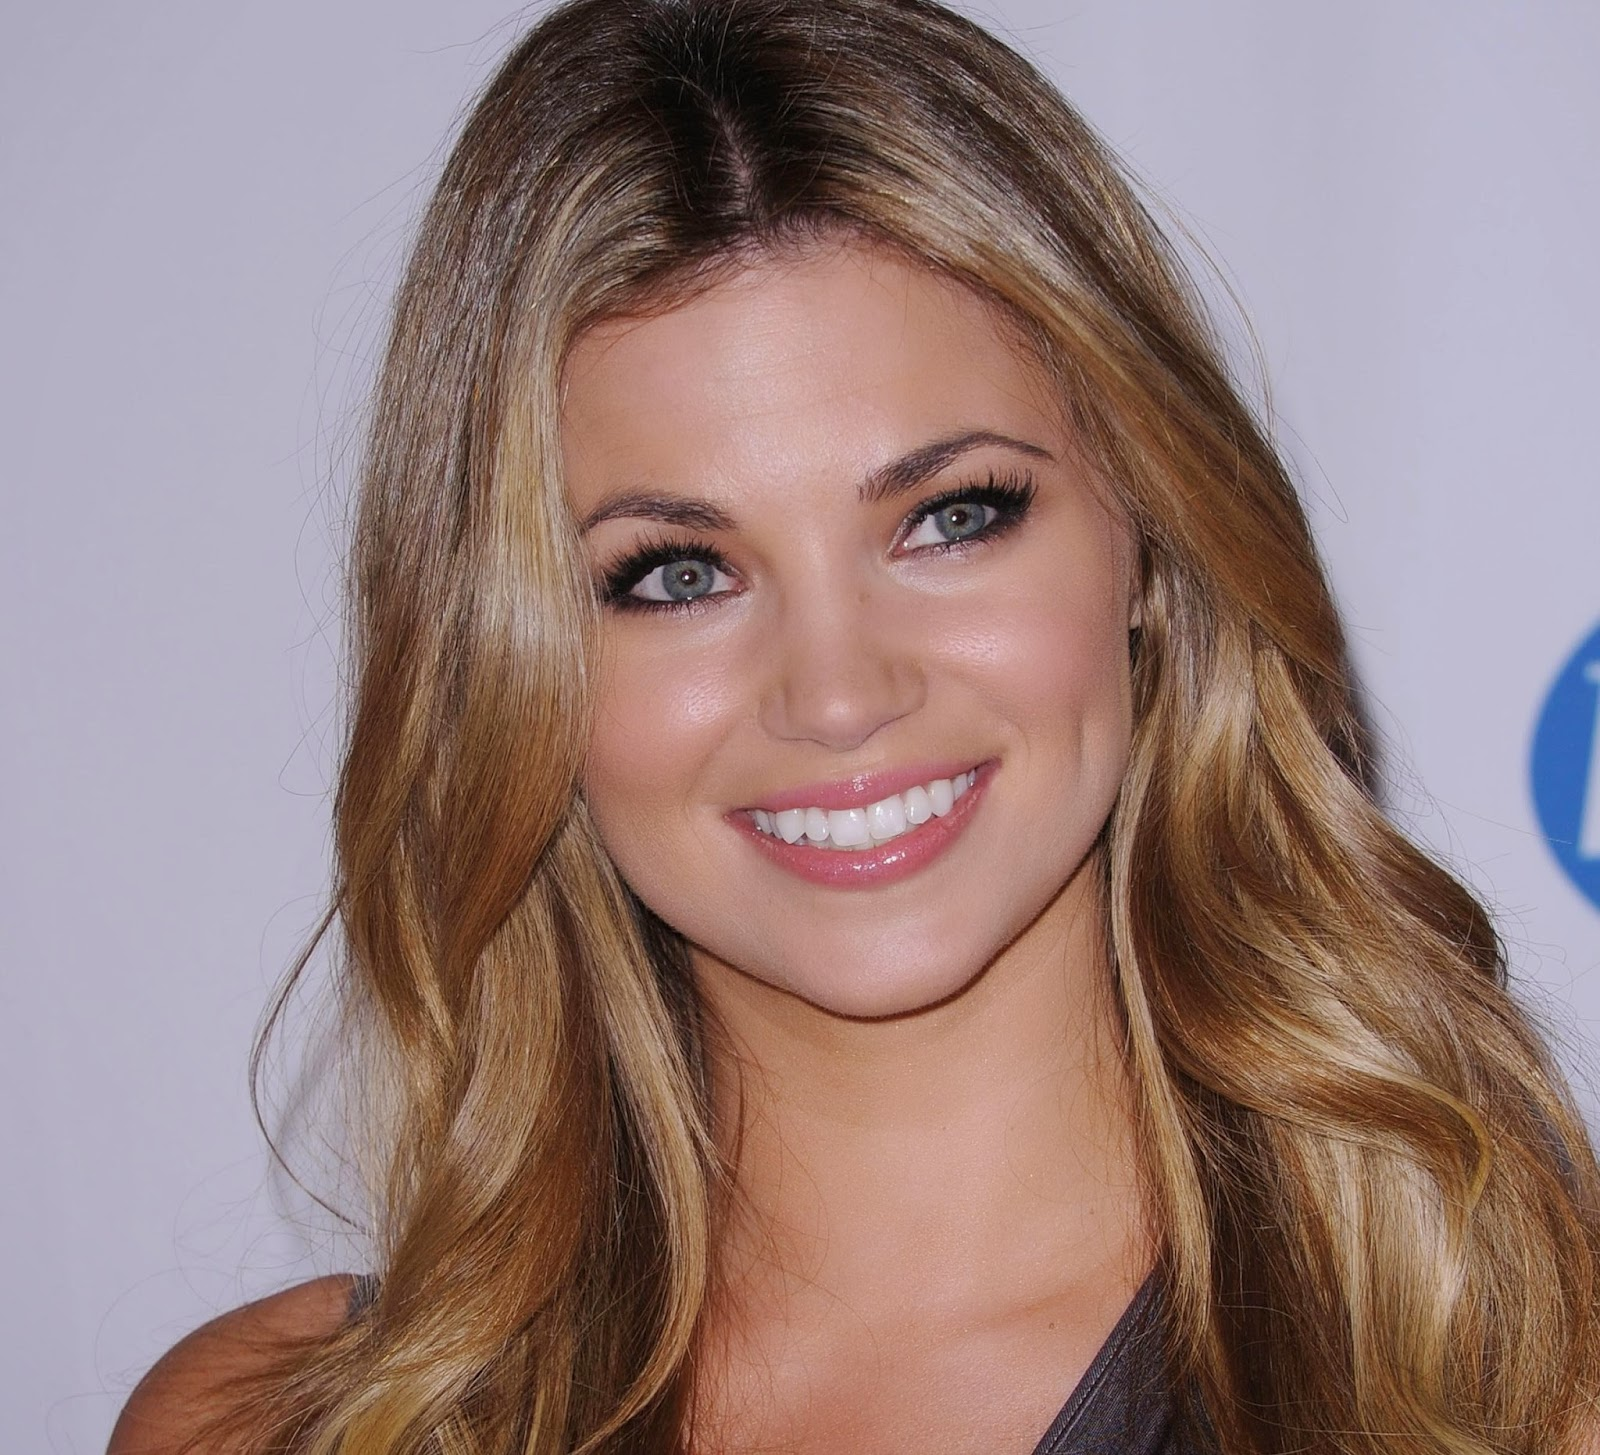 Amber Lancaster Wallpapers Download   Hot Girls Wallpaper 1600x1455